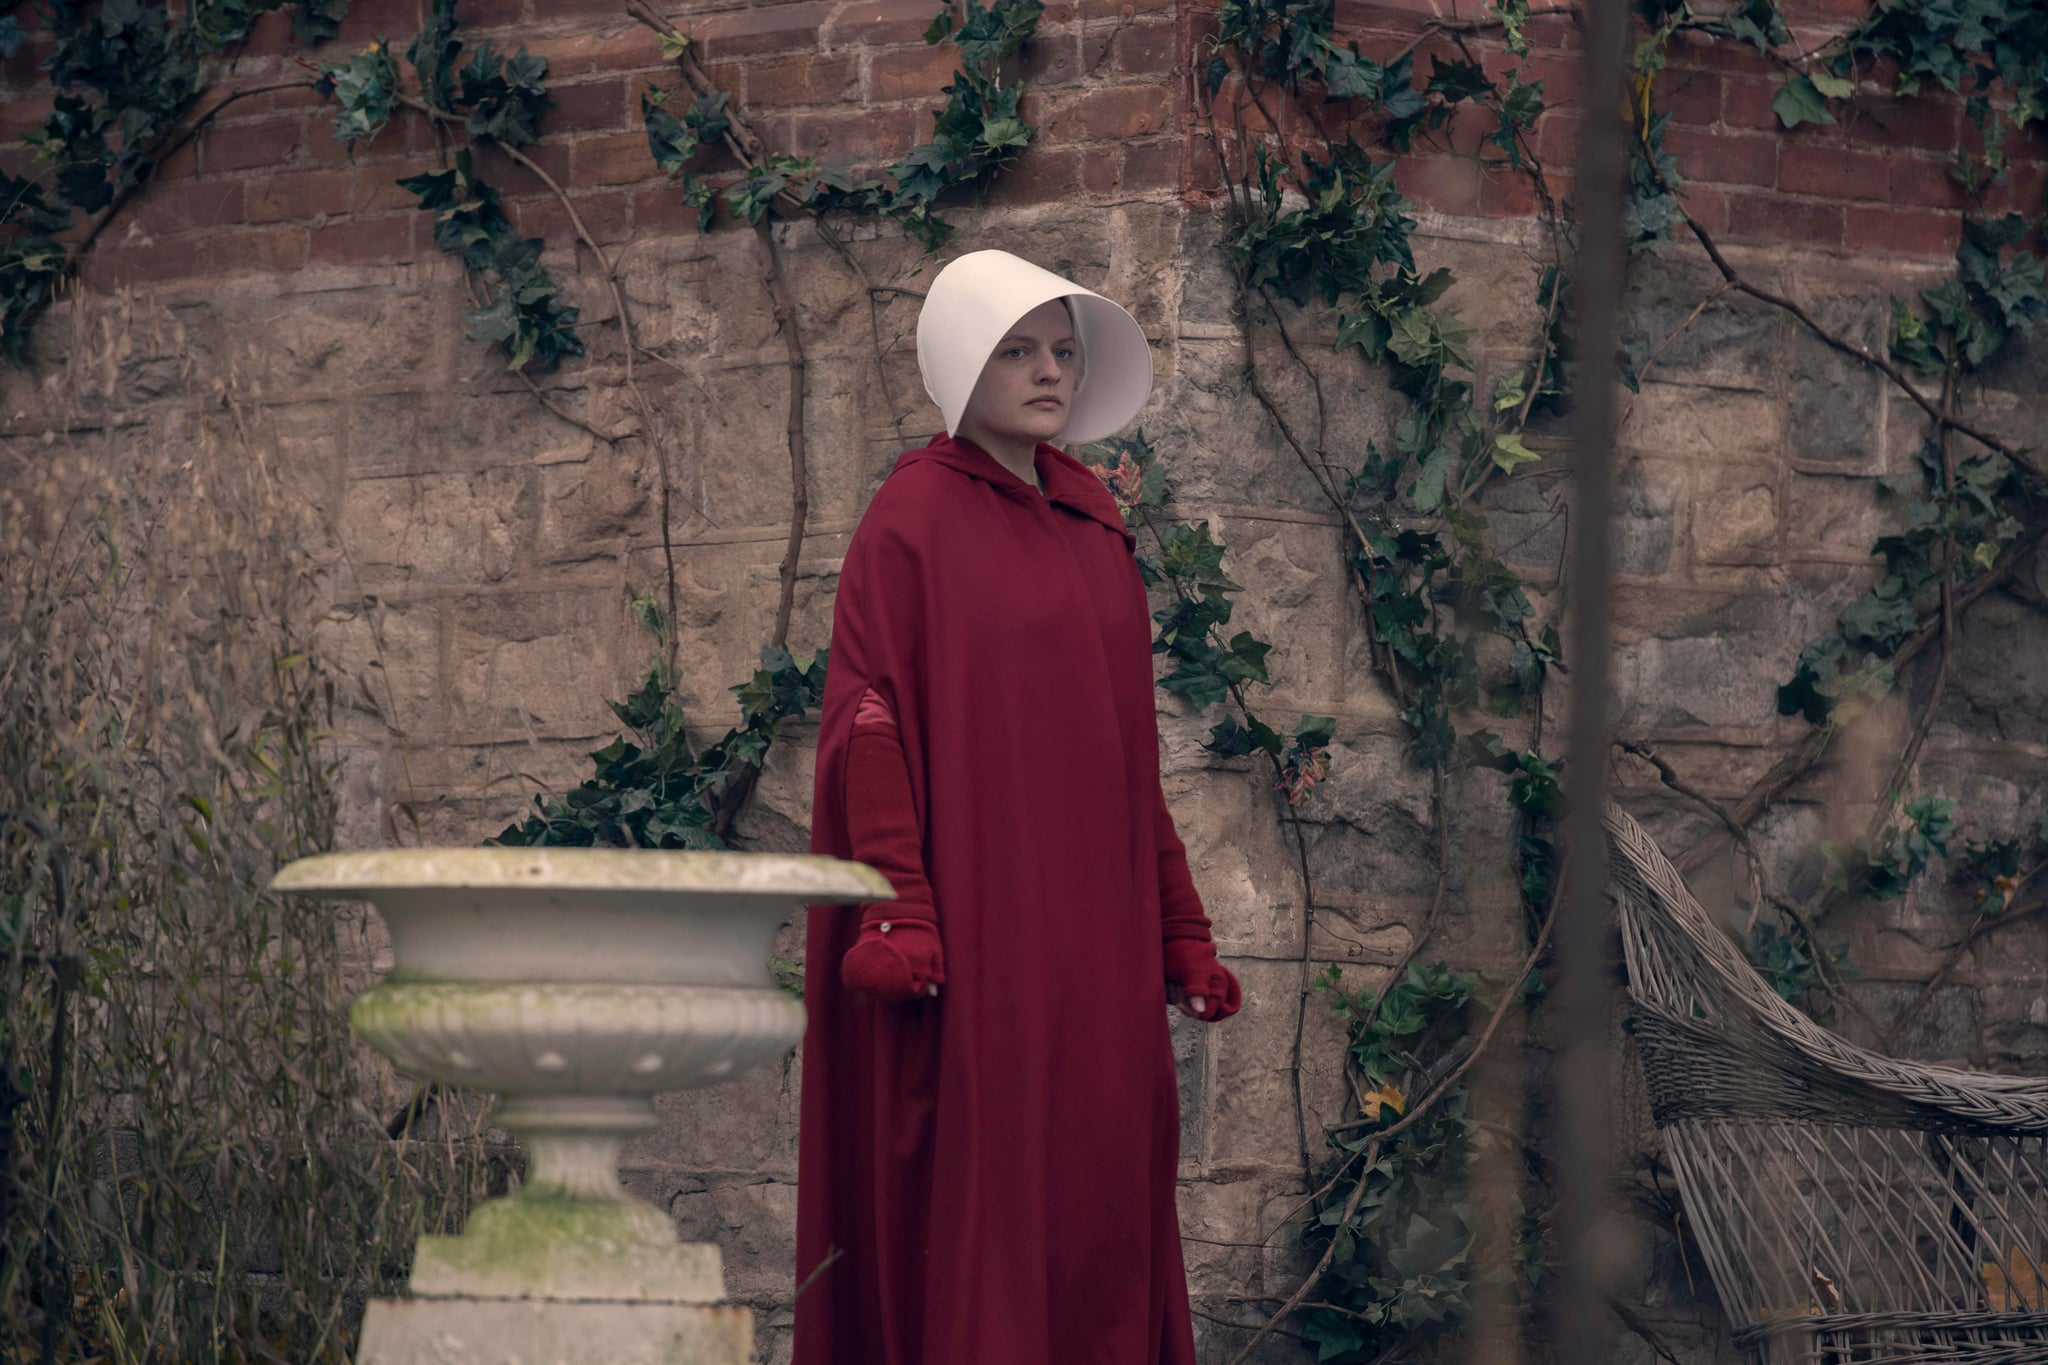 THE HANDMAID'S TALE, Elizabeth Moss, 'Mary and Martha', (Season 3, Episode 302, aired June 5, 2019). photo: Ely Dassas / Hulu / Courtesy Everett Collection